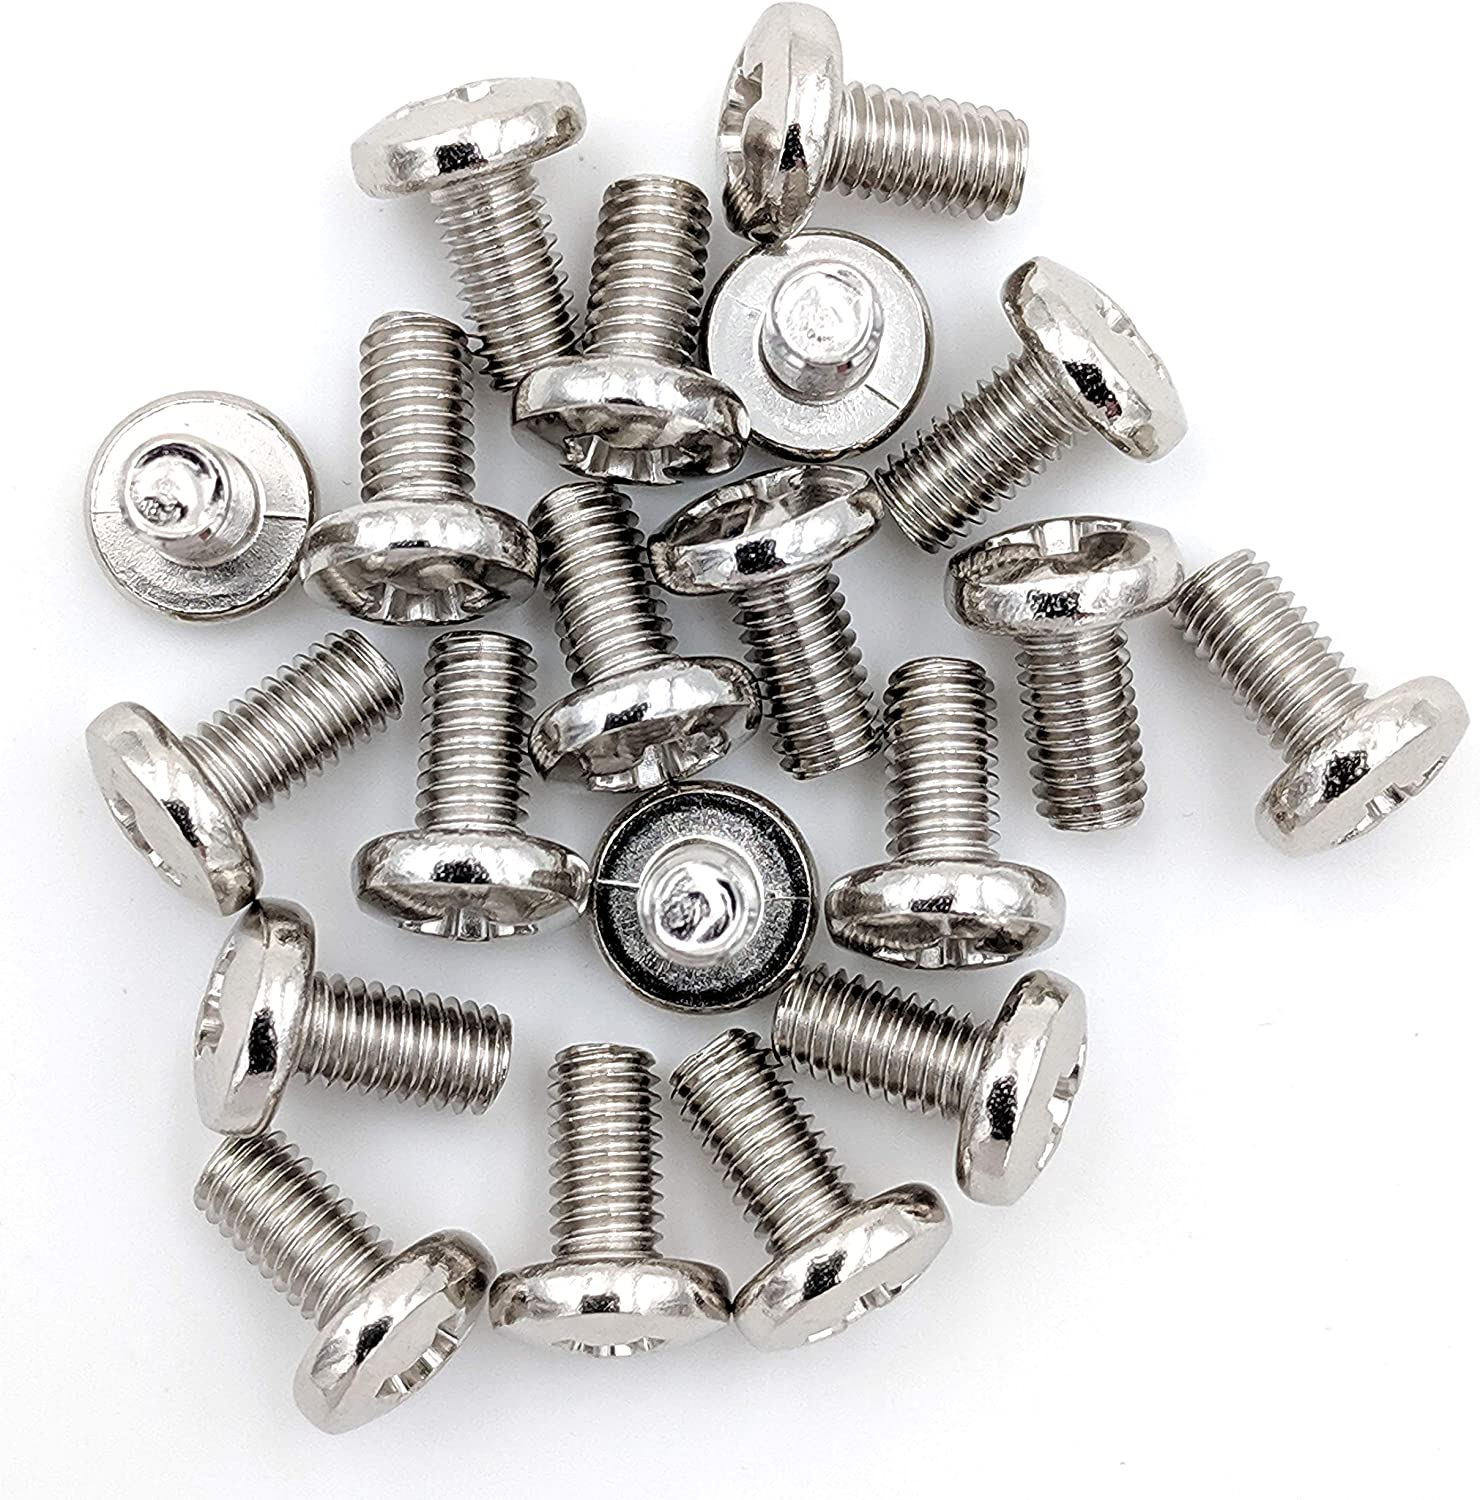 100-Pack Nickel Plated Chrome Cabinet Screws for CB and 10 Meter Radios 100 Cover